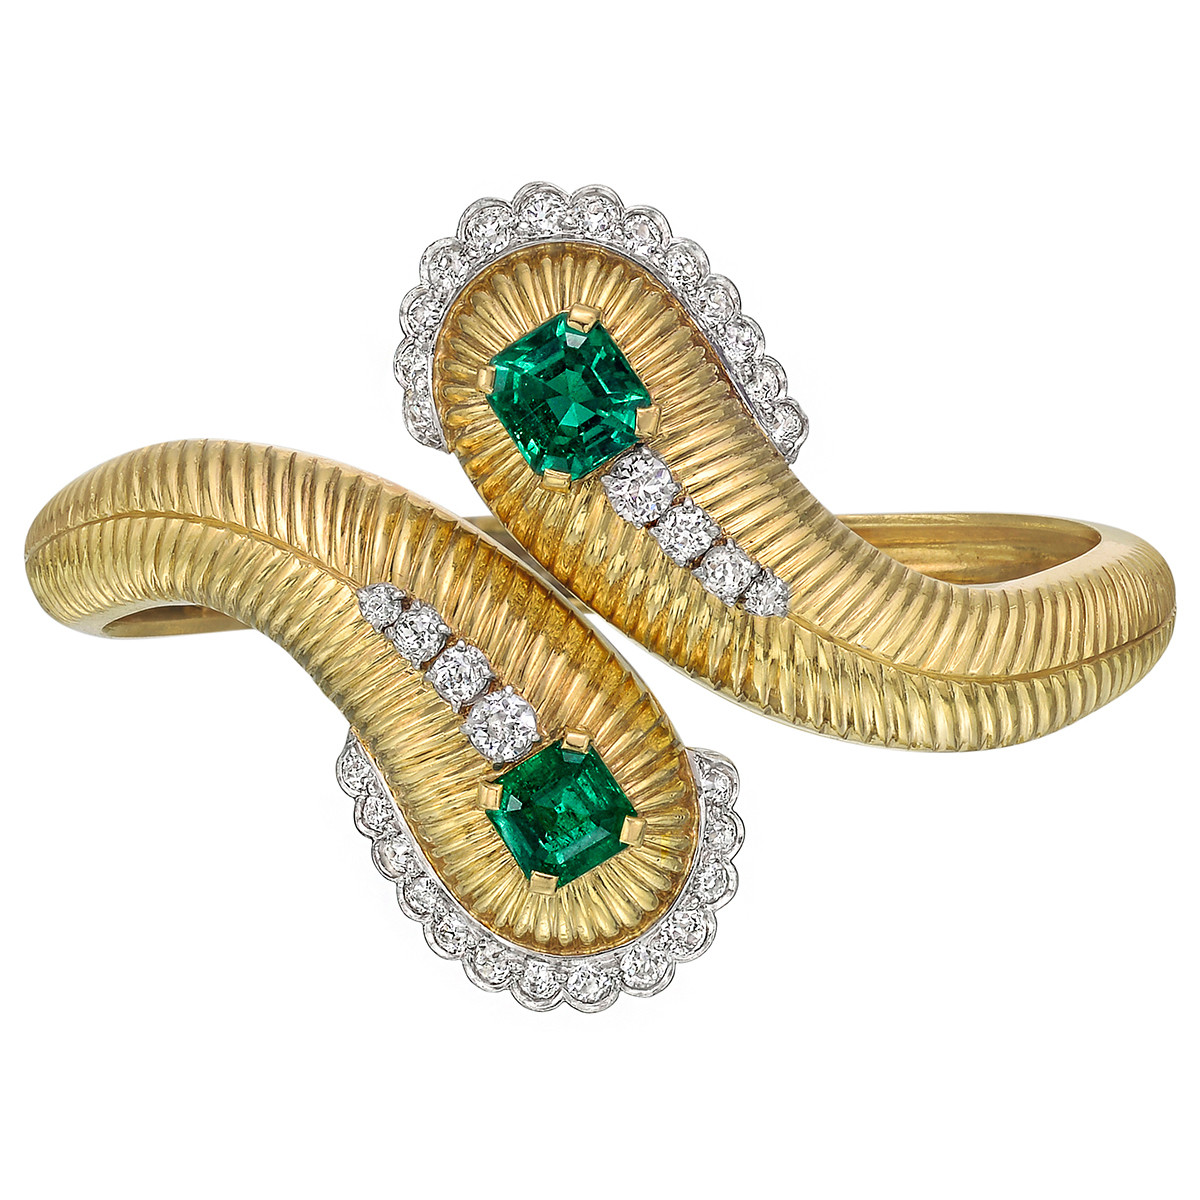 Emerald & Diamond Hinged Cuff Bracelet